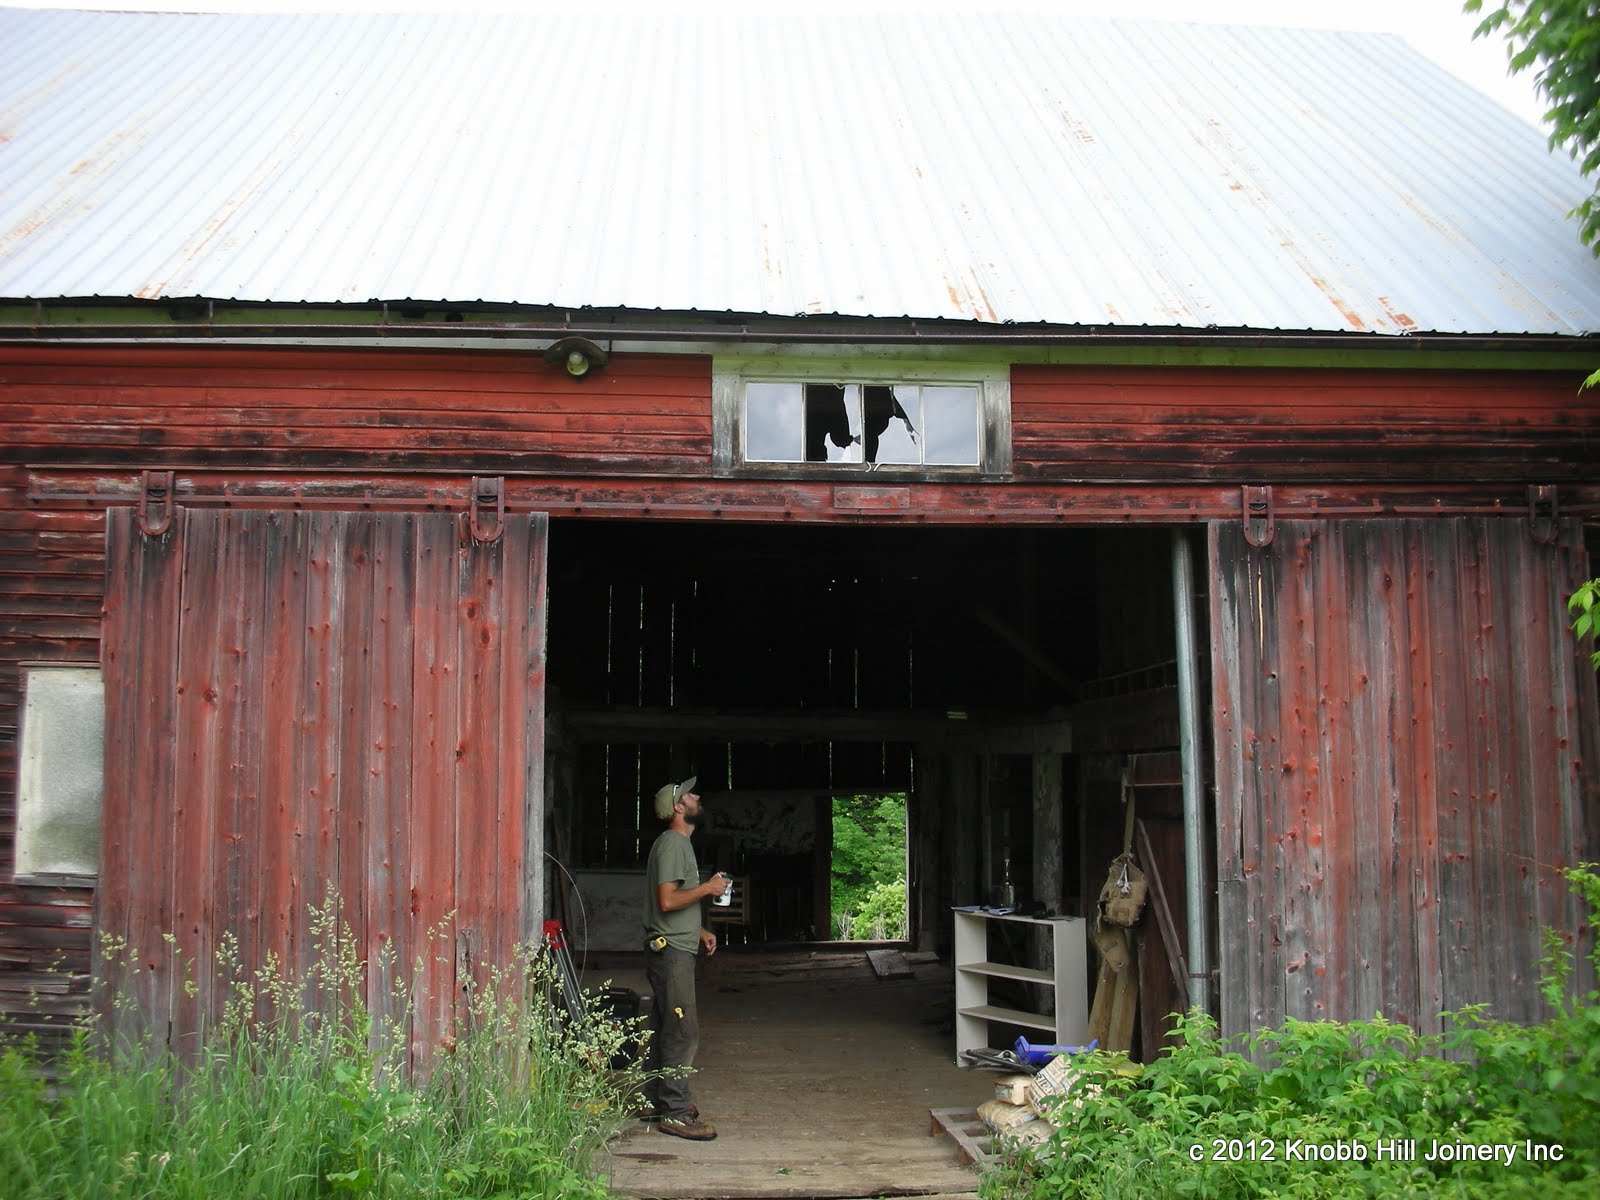 Two sides of the barn facing the road had been clapboarded in the late 1800's.